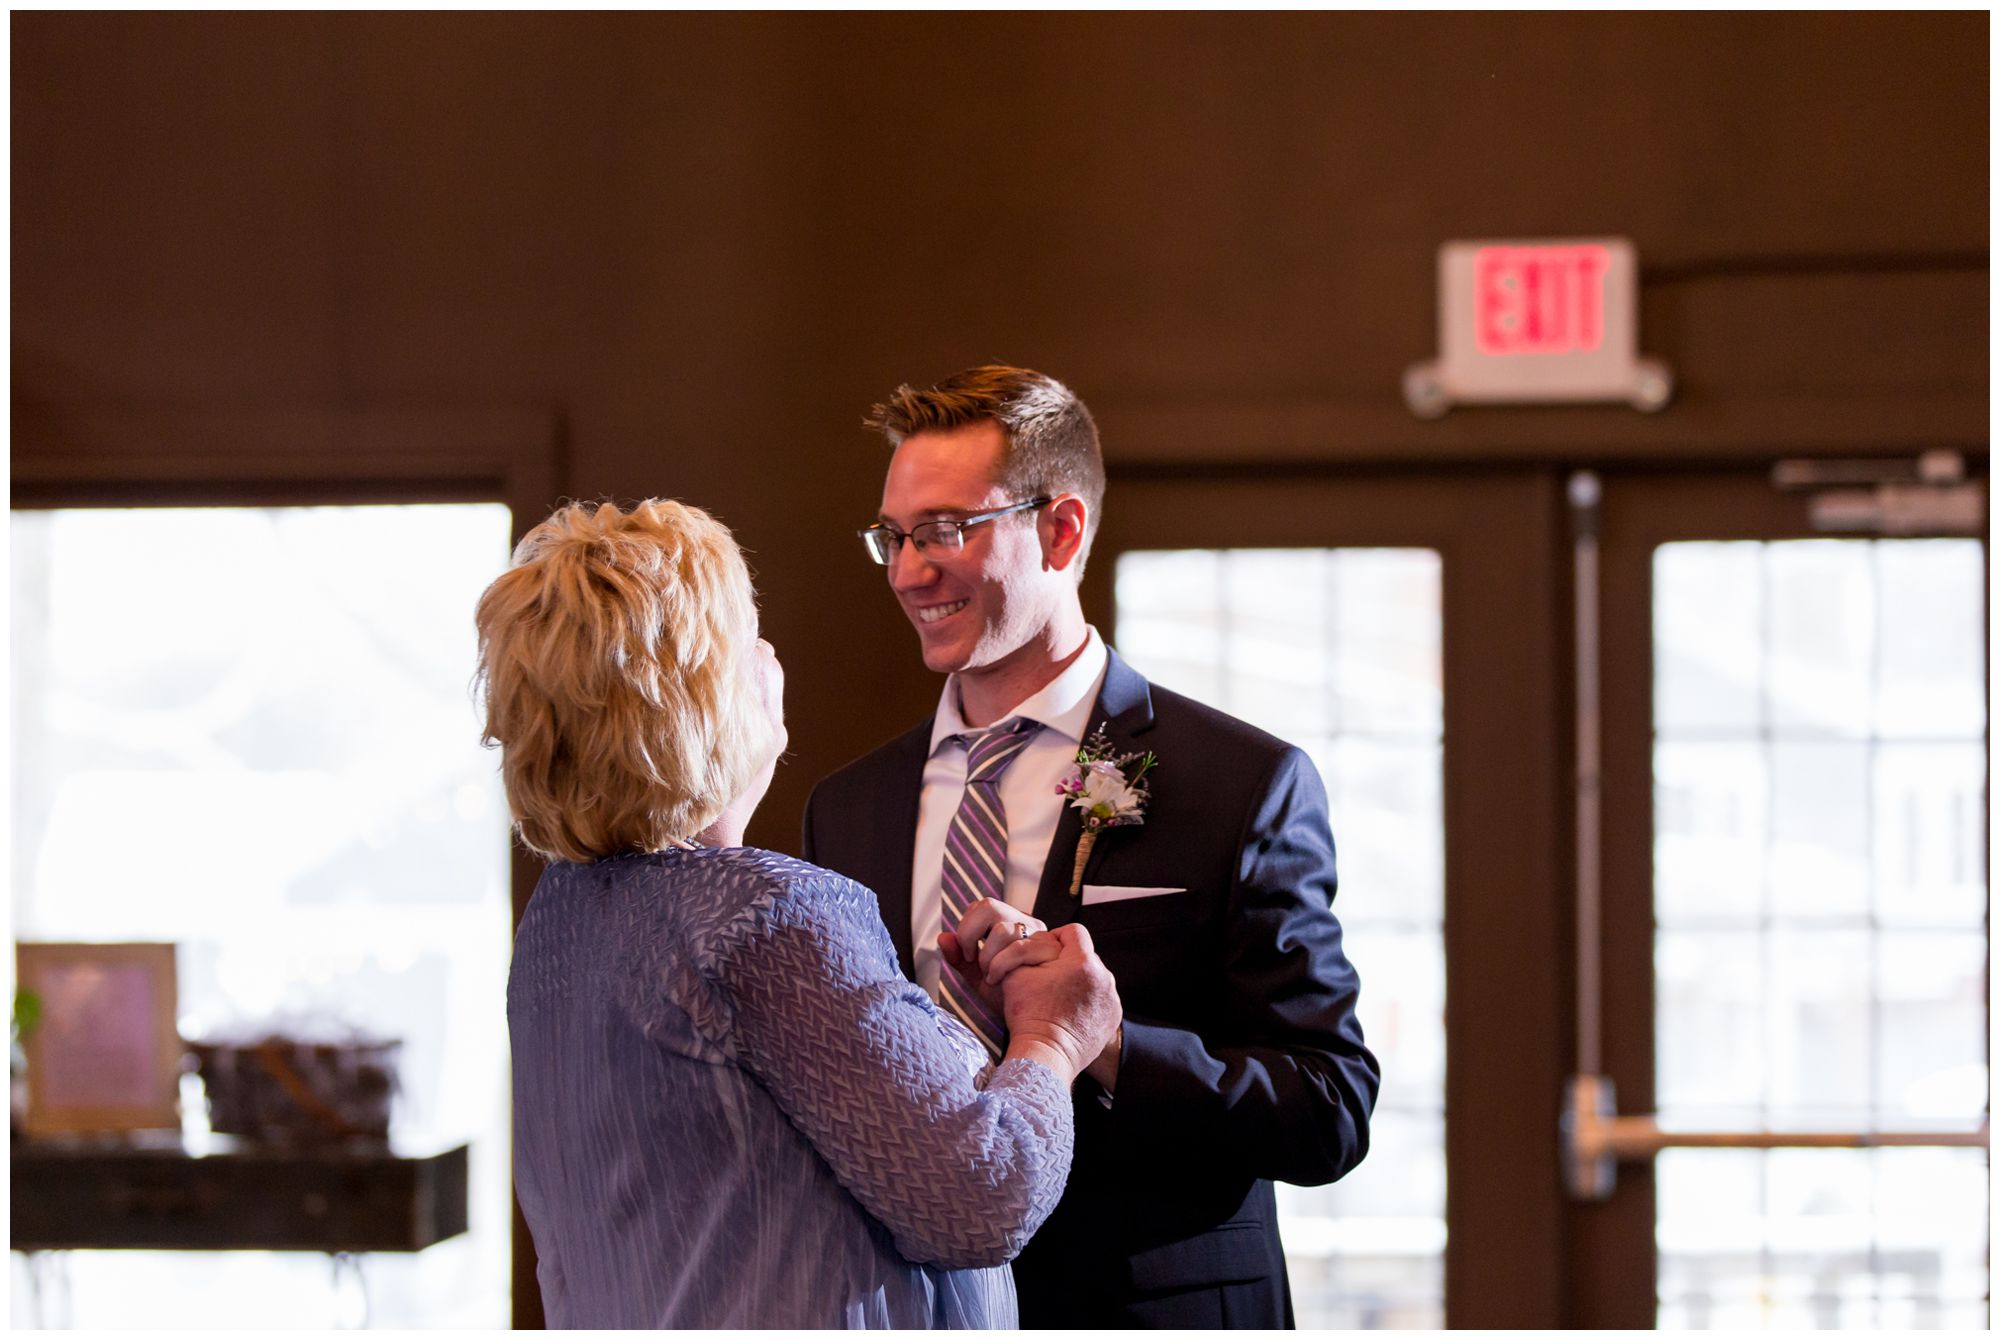 groom and mother dance during wedding reception at Mustard Seed Gardens in Noblesville Indiana